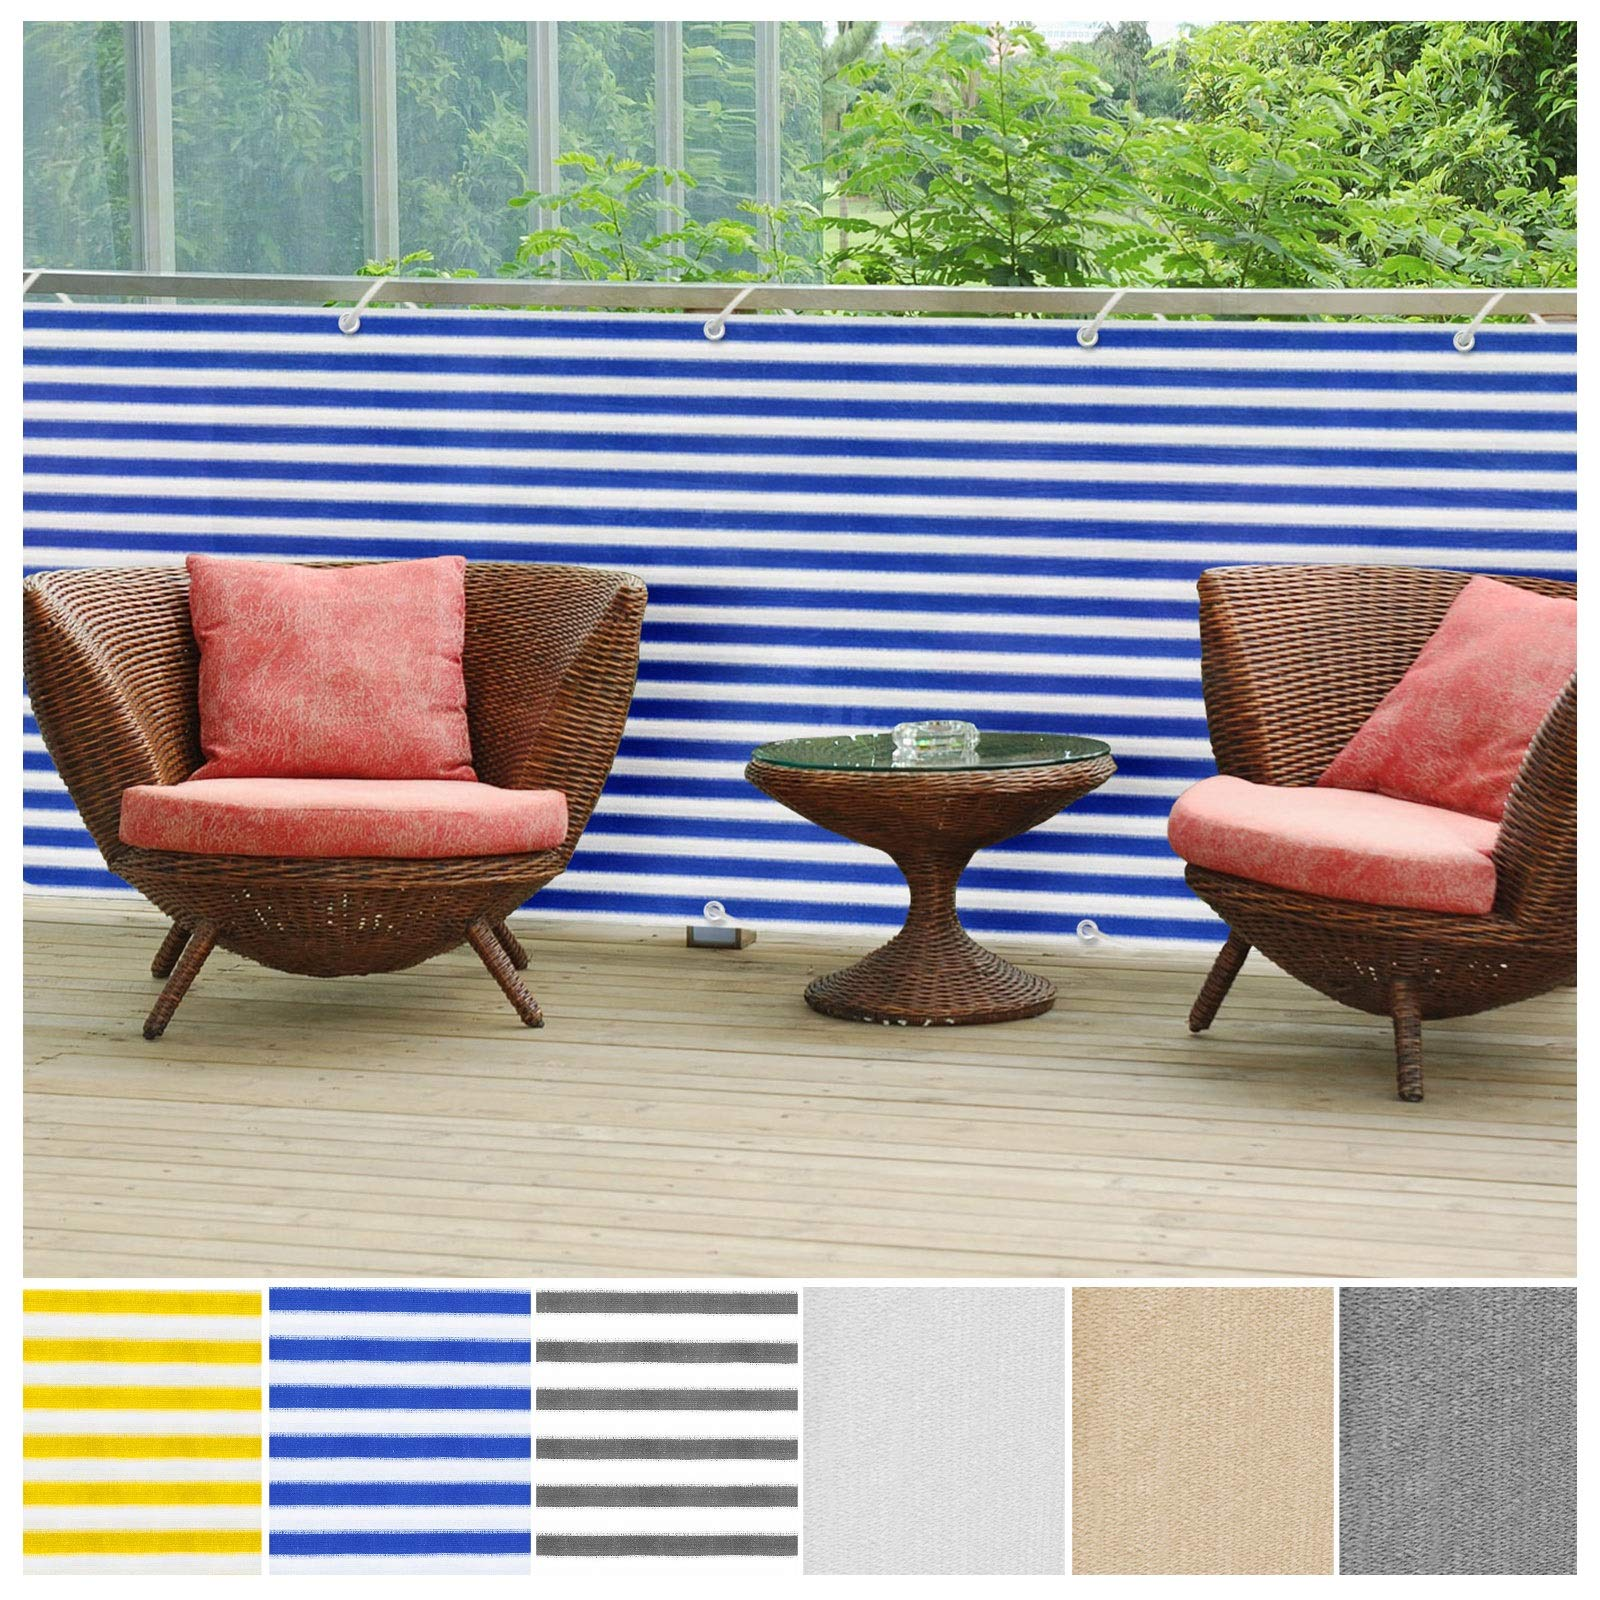 casa pura Balcony Privacy Screening Cover | Screen Cover for UV Protection - 3' x 16'4'' - Blue/White | Multiple Colors Available by casa pura